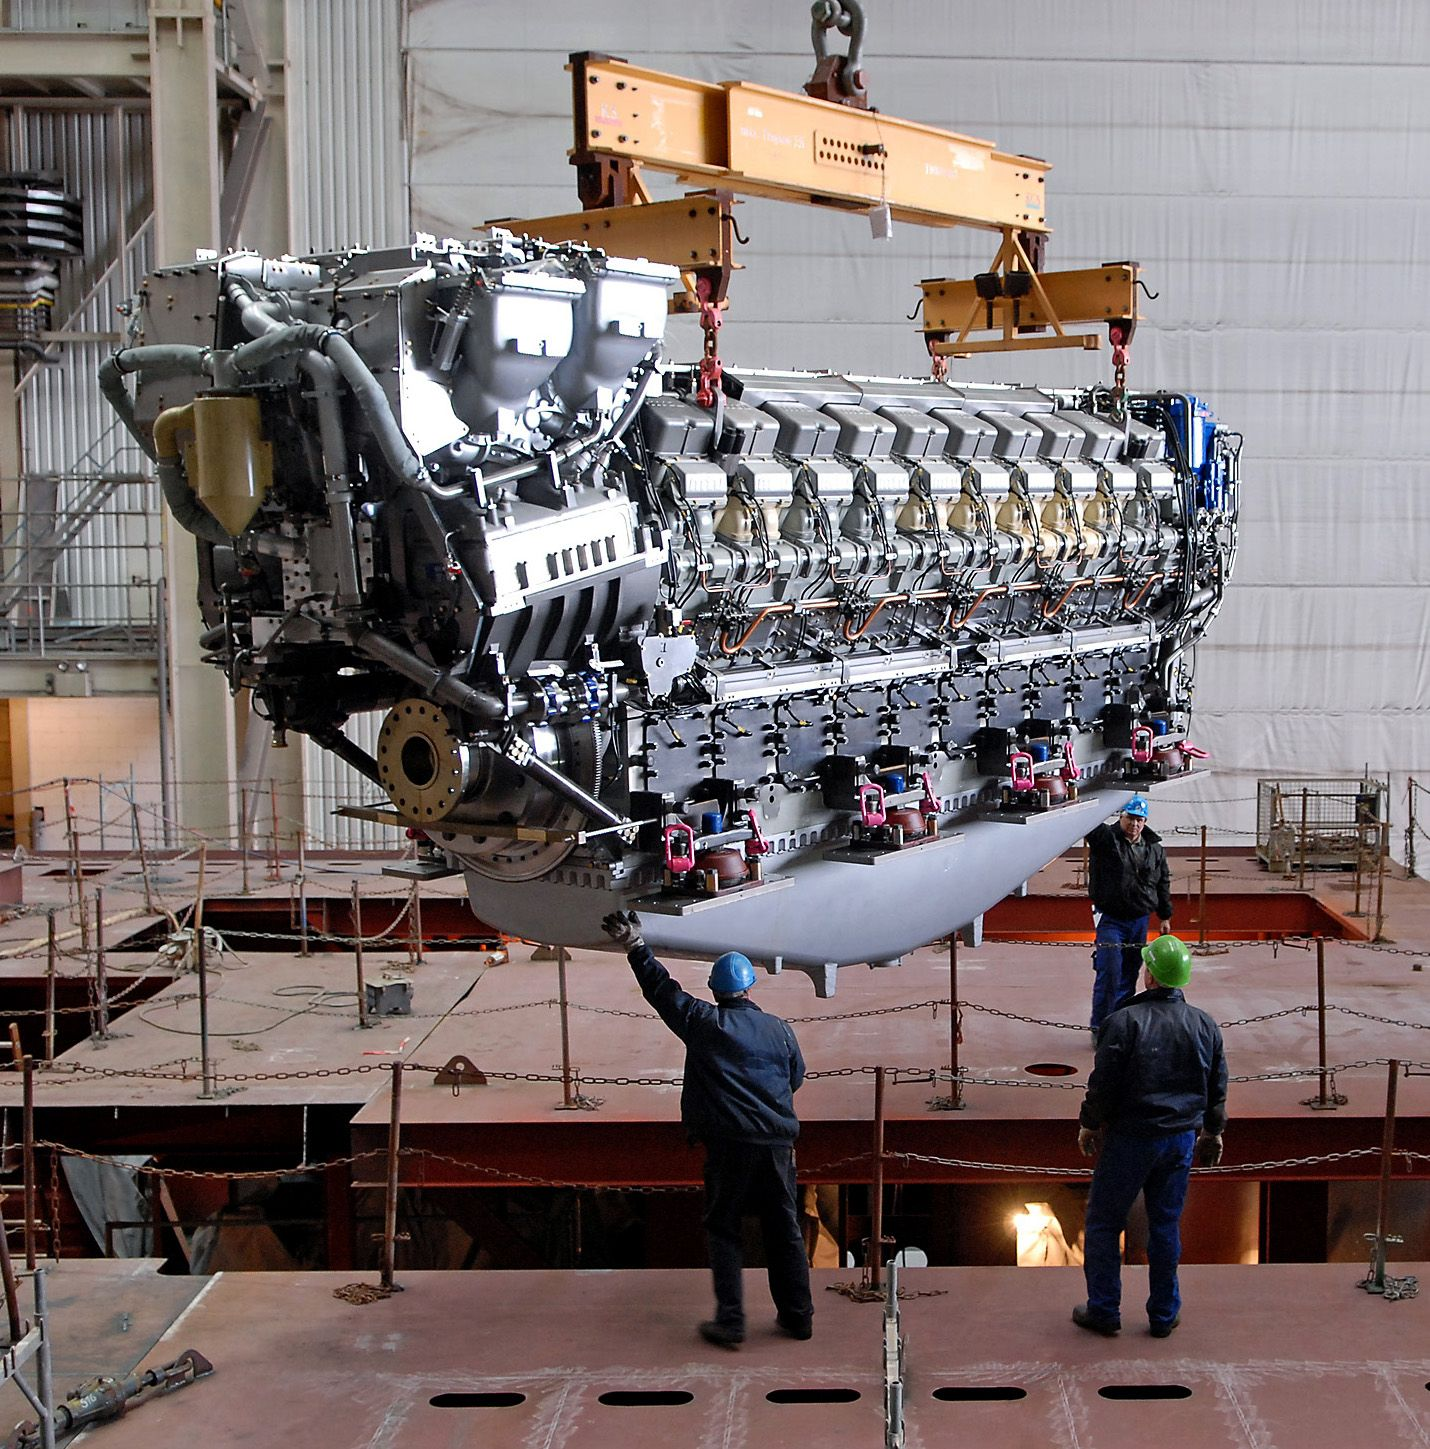 HttpbpblogspotcomqjAvdNAgvsUTntpOgKgVIAAAAAAAACaA - Largest cruise ship engines